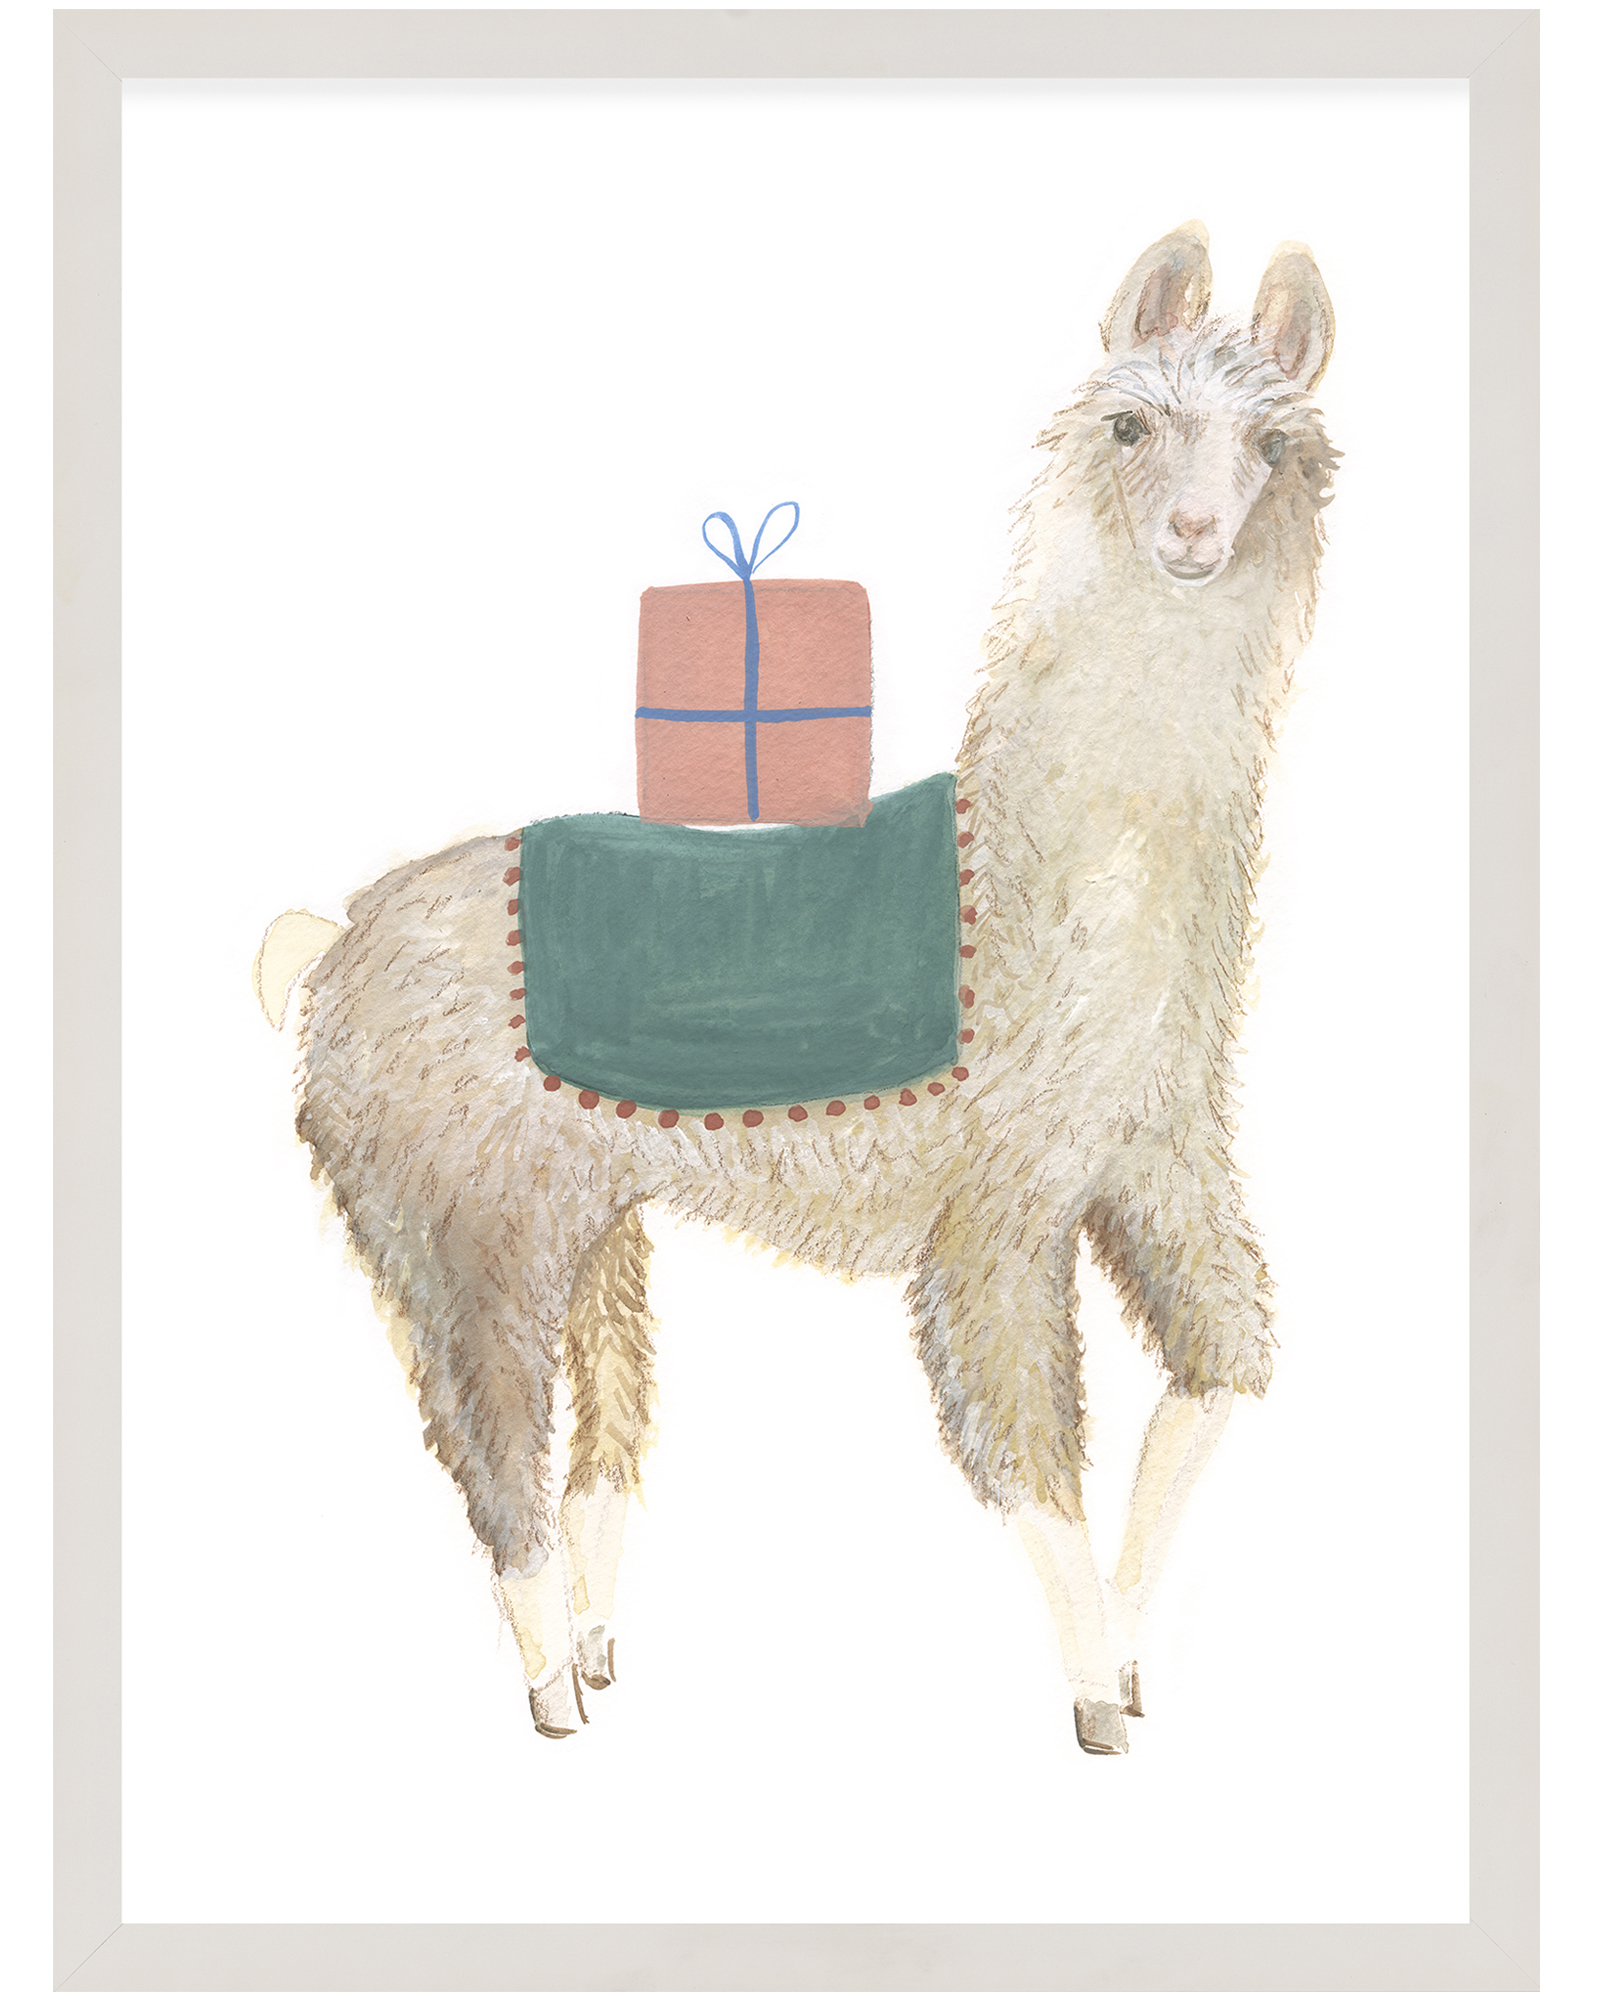 """Party Animals - Llama"" by Fours Are Yellow,"